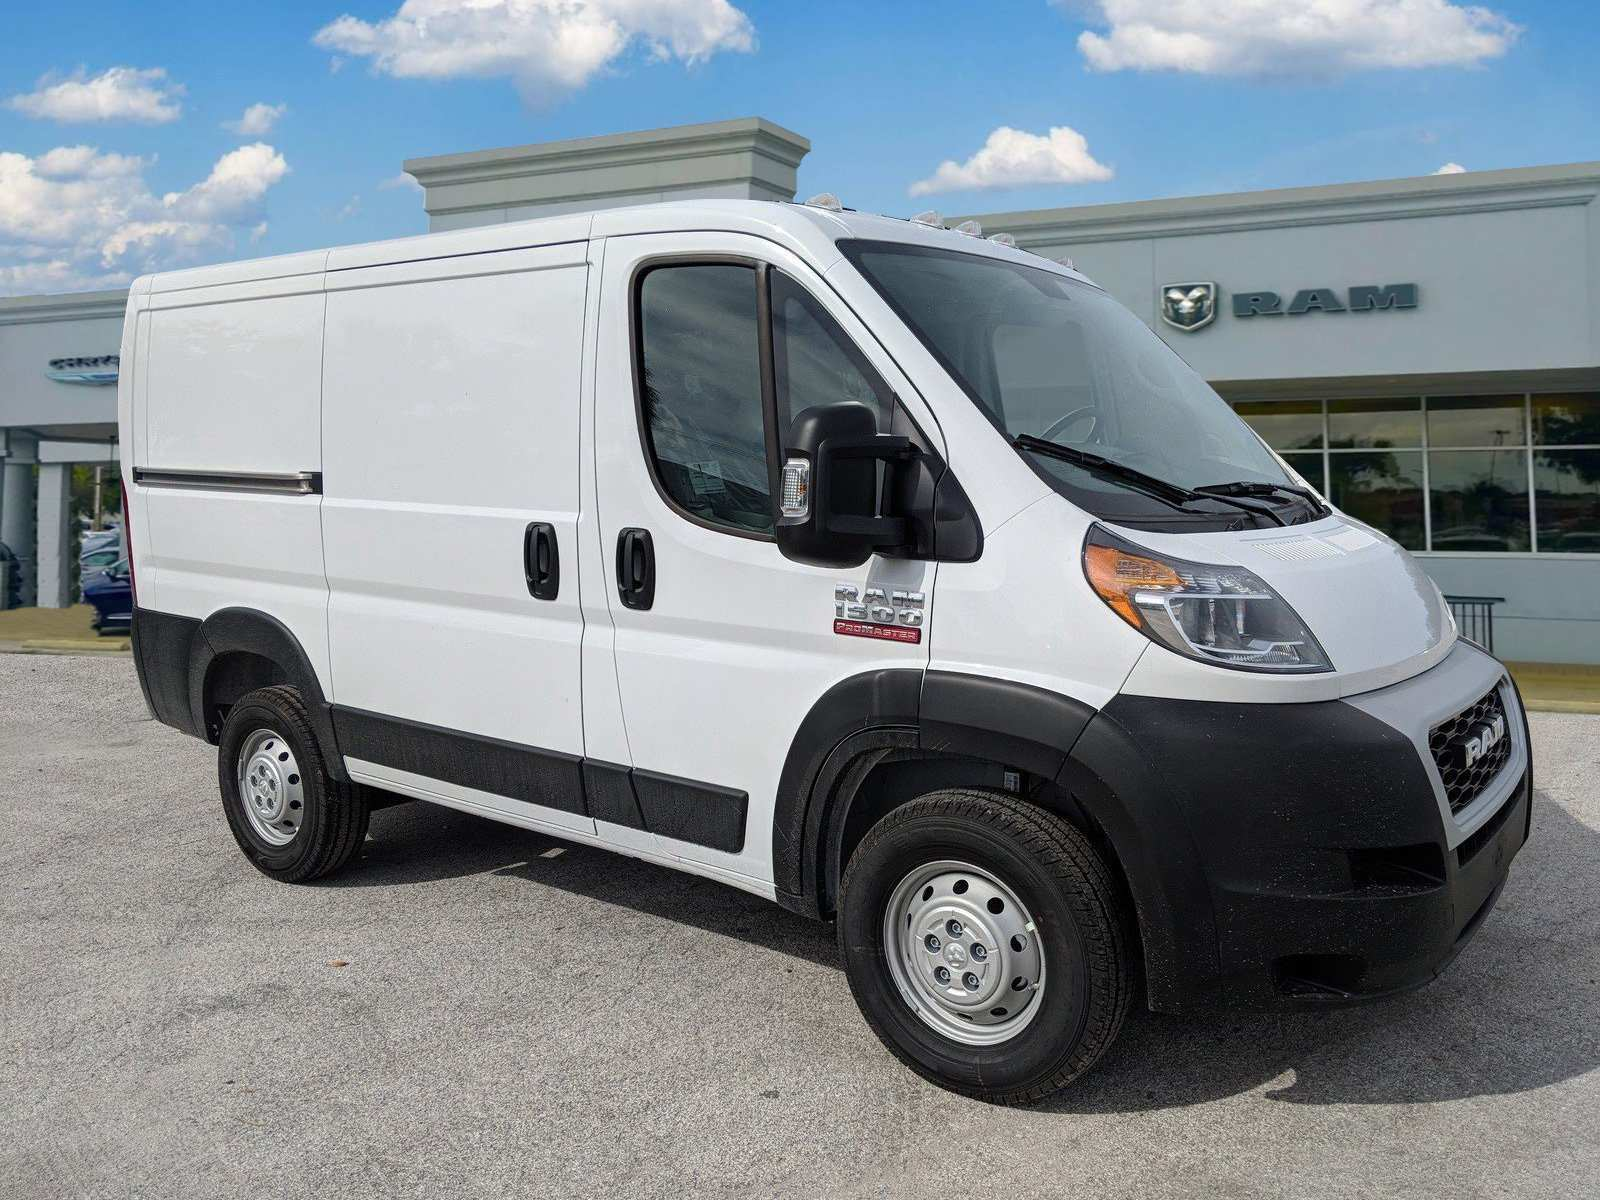 18 Great New Dodge Promaster 2019 New Engine Spy Shoot with New Dodge Promaster 2019 New Engine